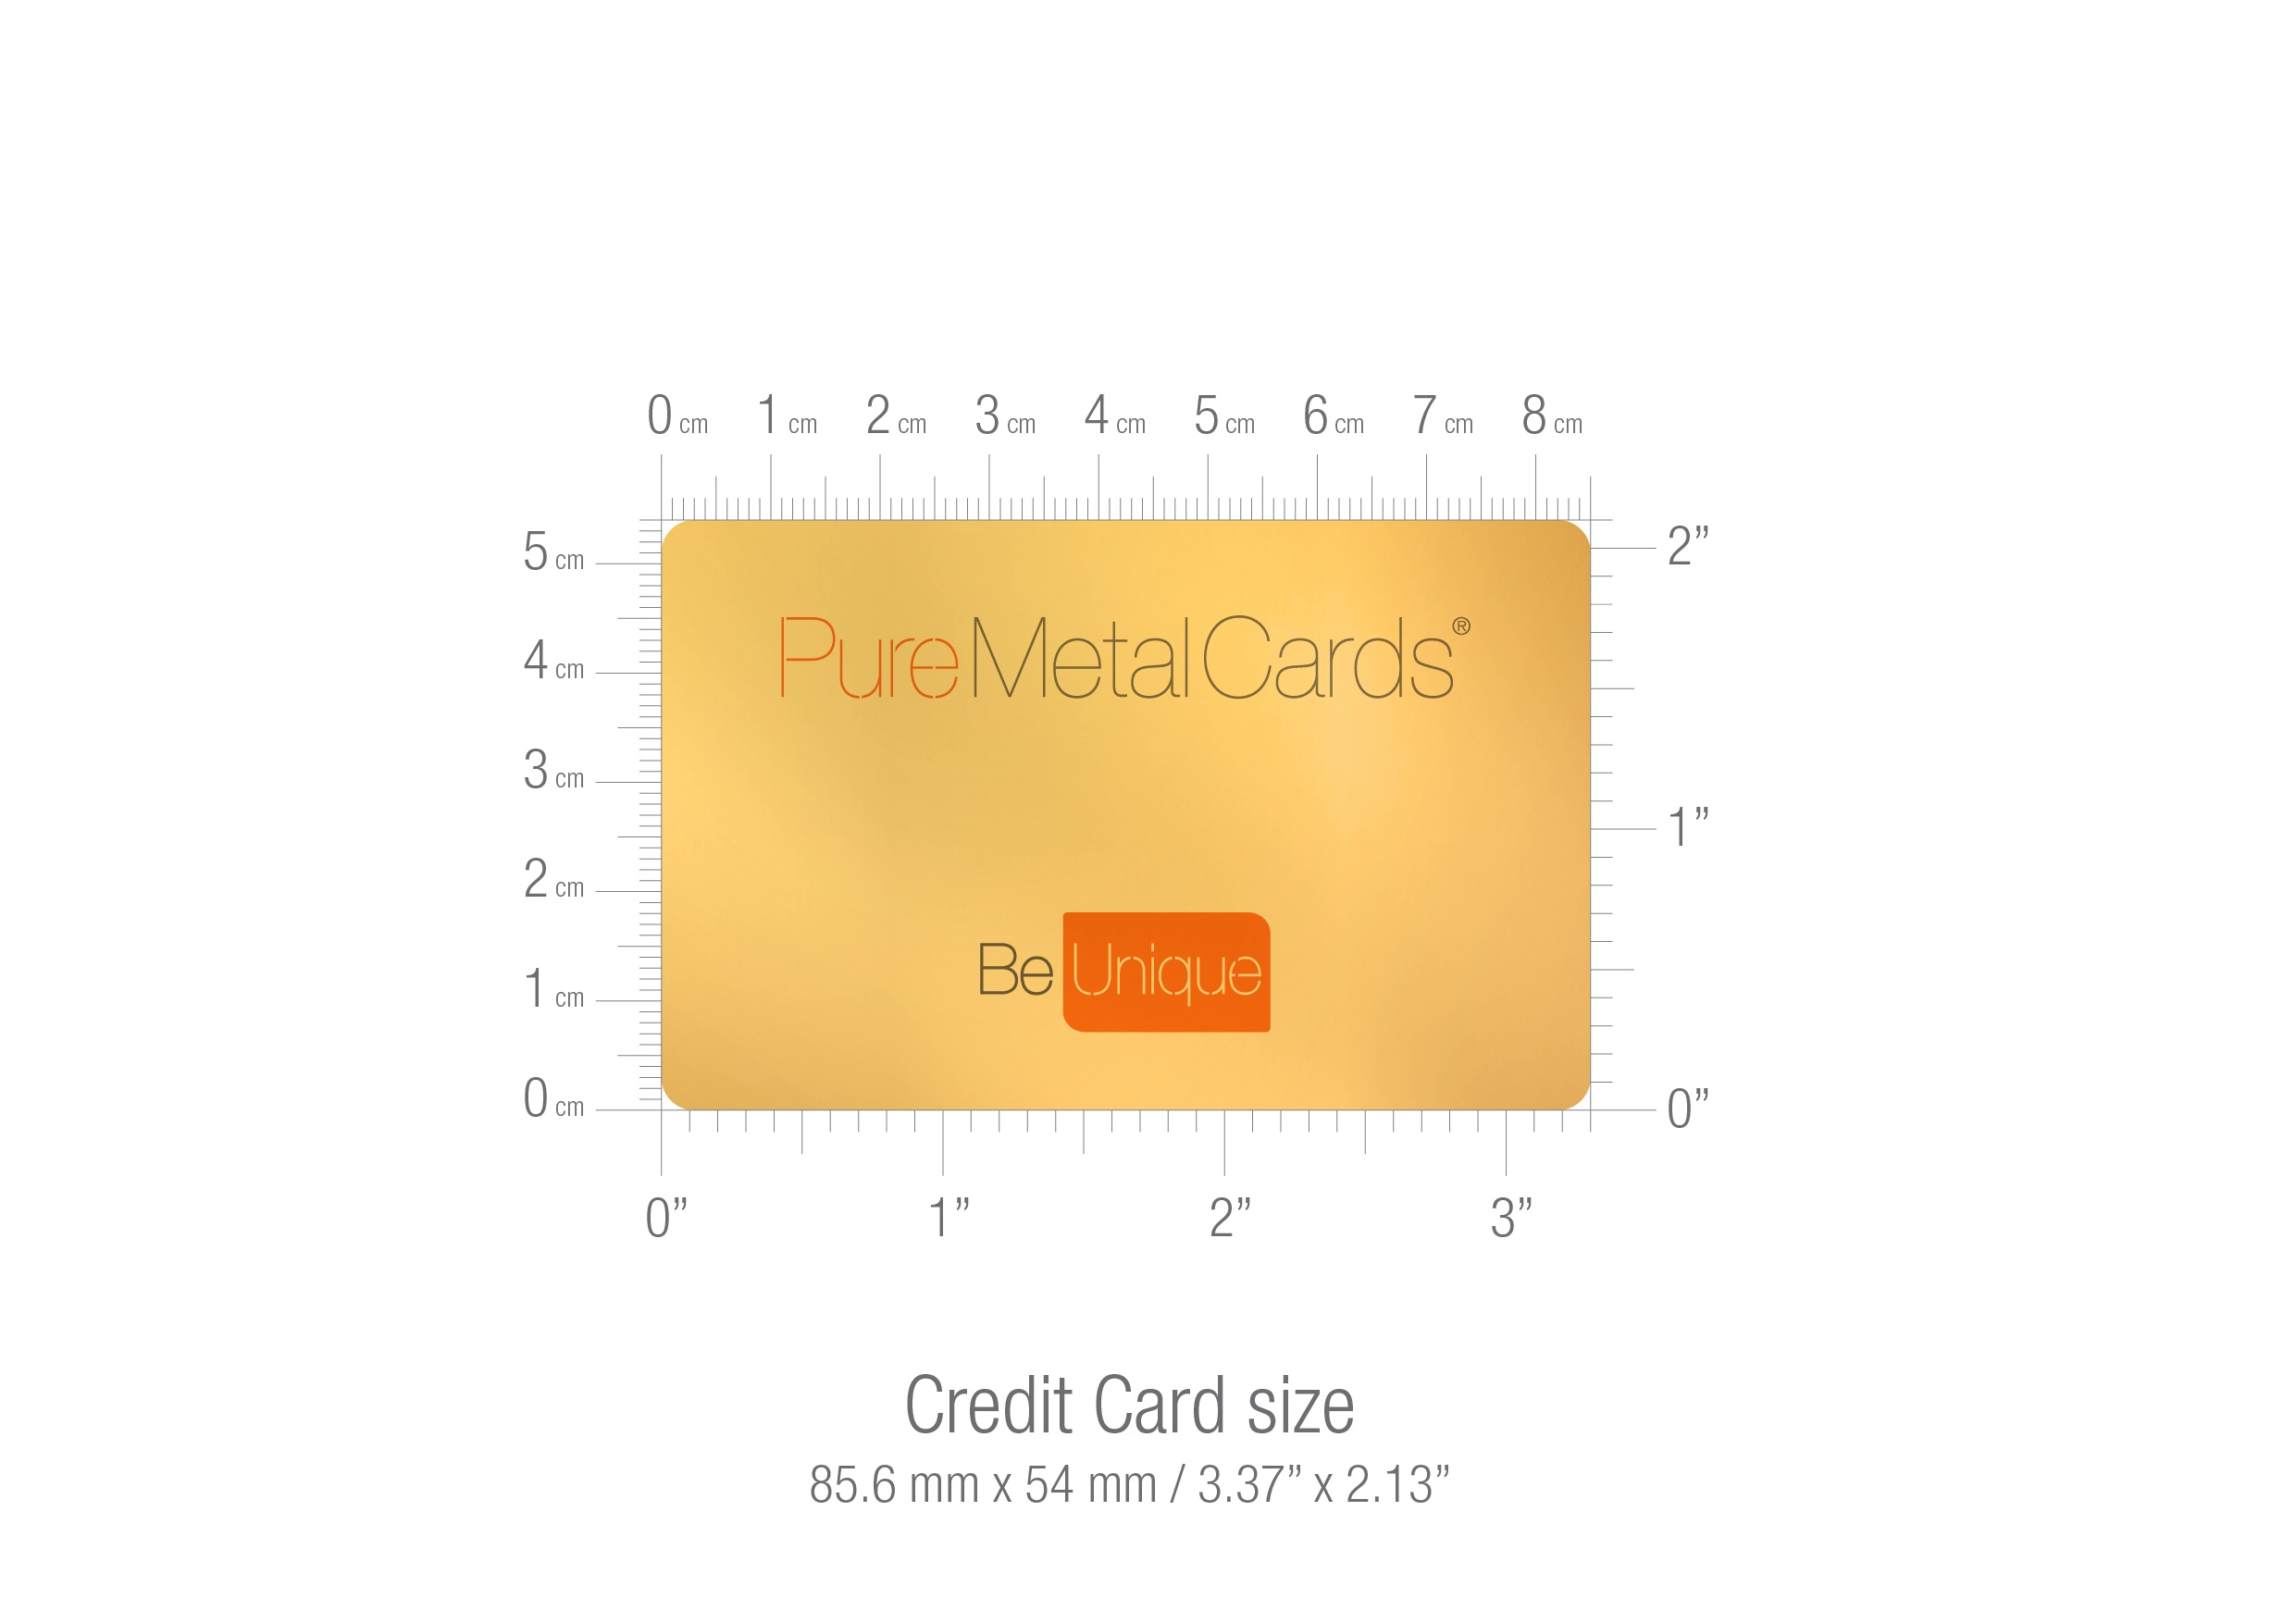 PMC credit card sizing